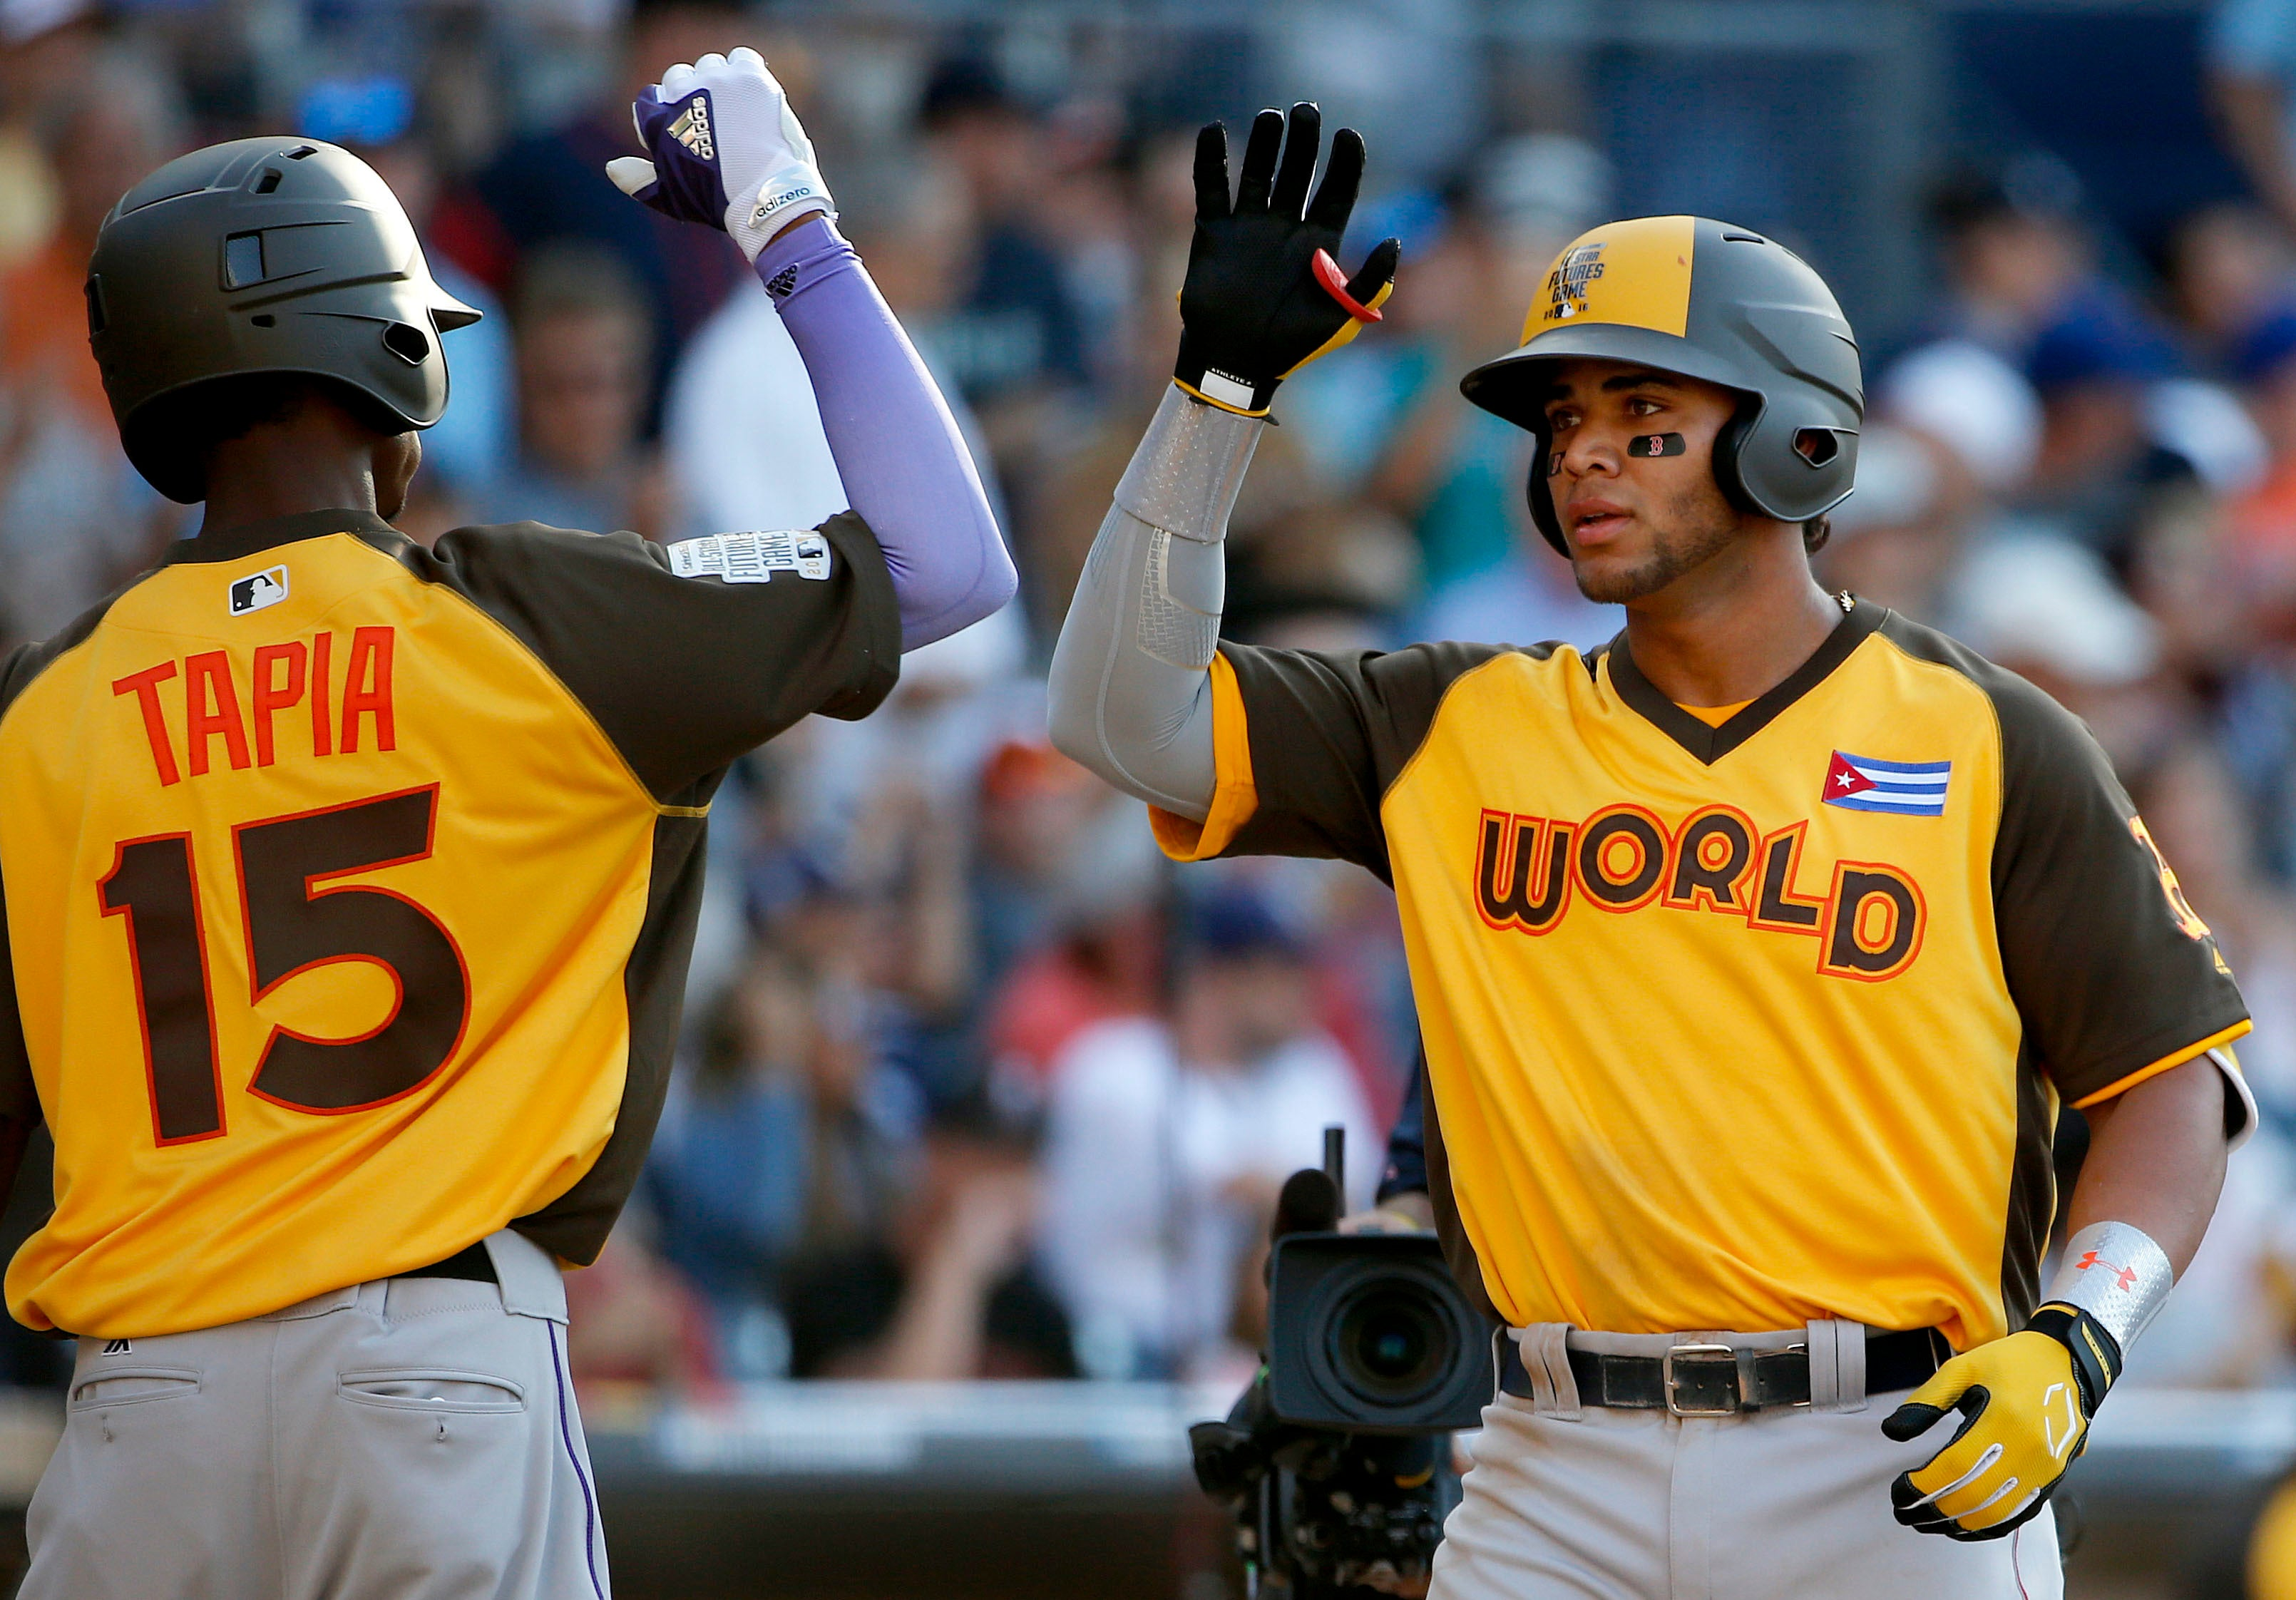 World Team's Yoan Moncada, of the Boston Red Sox, greets teammate Raimel Tapia, of the Colorado Rockies (15), after hitting a two-run home run against the U.S. Team during the eighth inning of the All-Star Futures baseball game, Sunday, July 10, 2016, in San Diego. (AP Photo/Lenny Ignelzi)